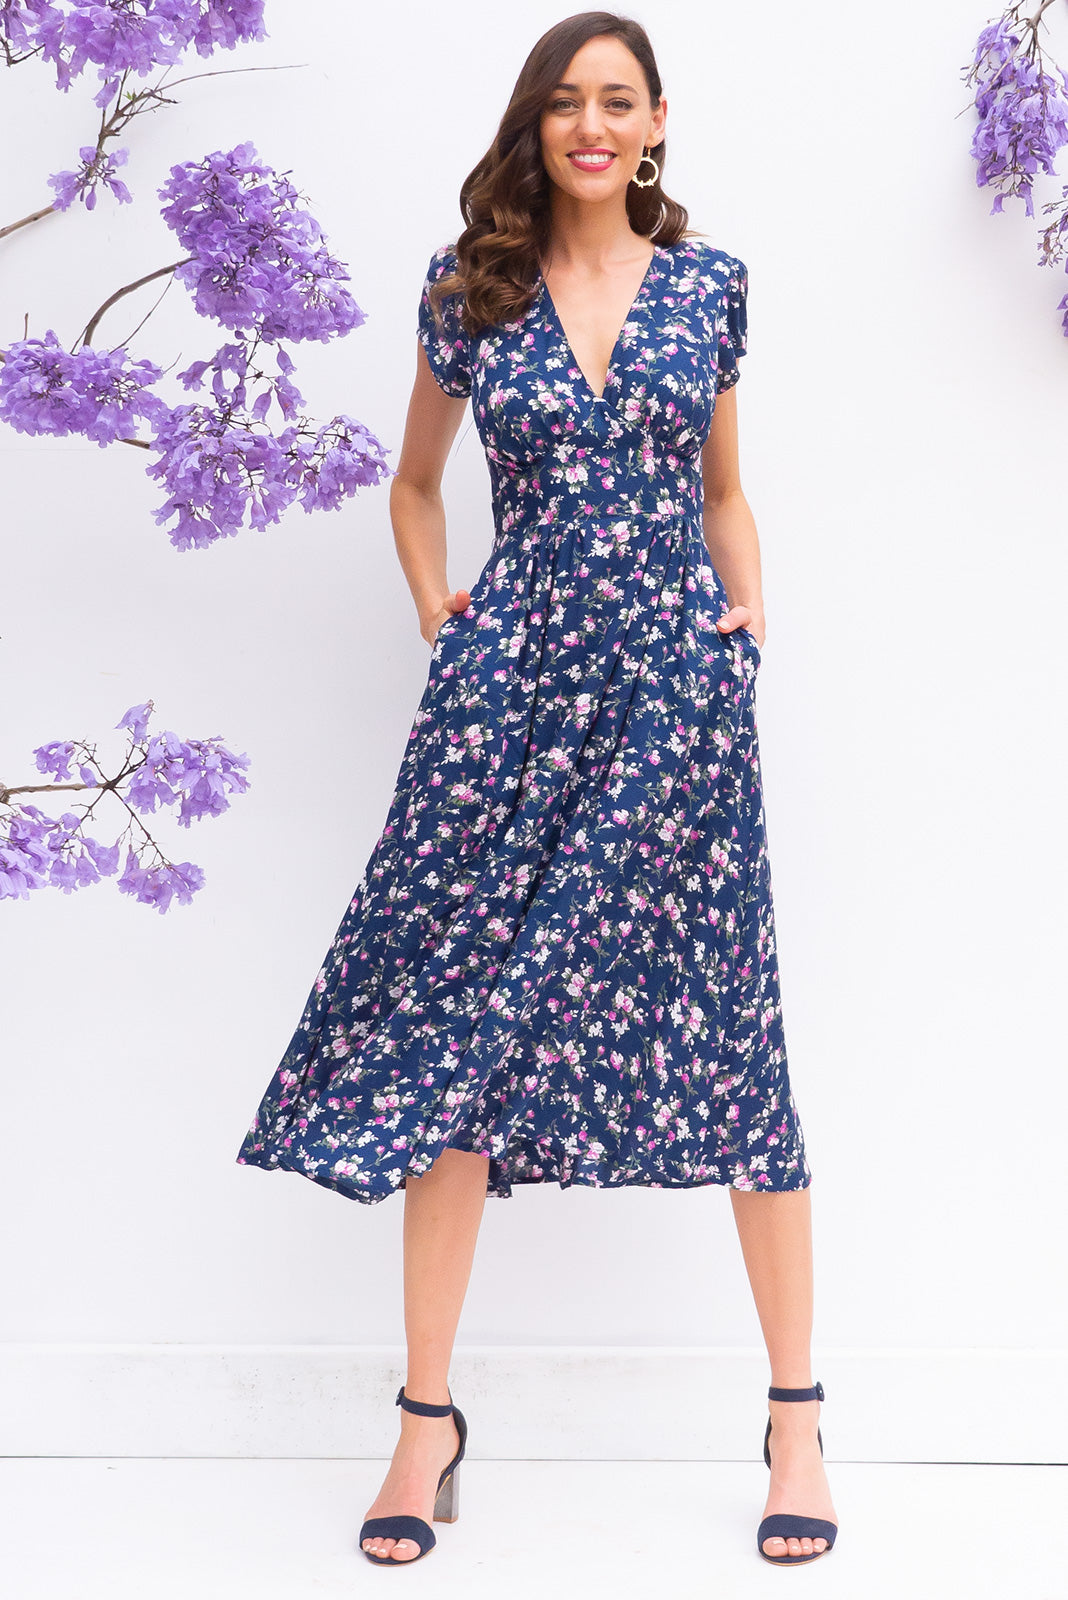 Lizzie Navy Tahalia Midi dress features a vintage inspired fitted basque waist and elasticated waist with a cap sleeve and deep v neck the fabric is a soft woven rayon in a bright navy small floral print